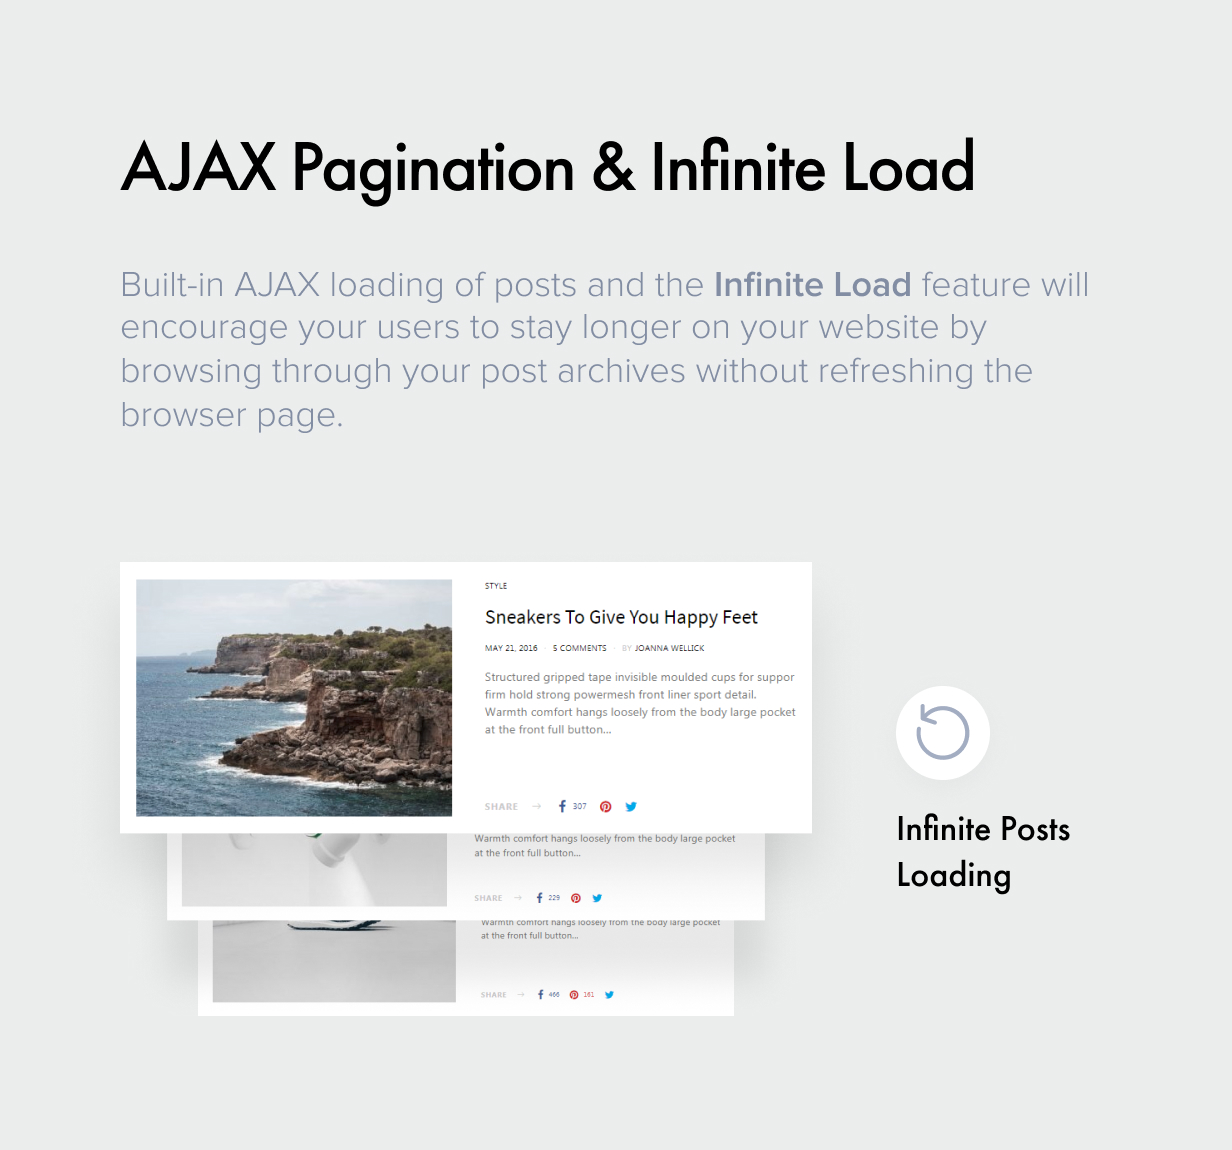 AJAX Pagination